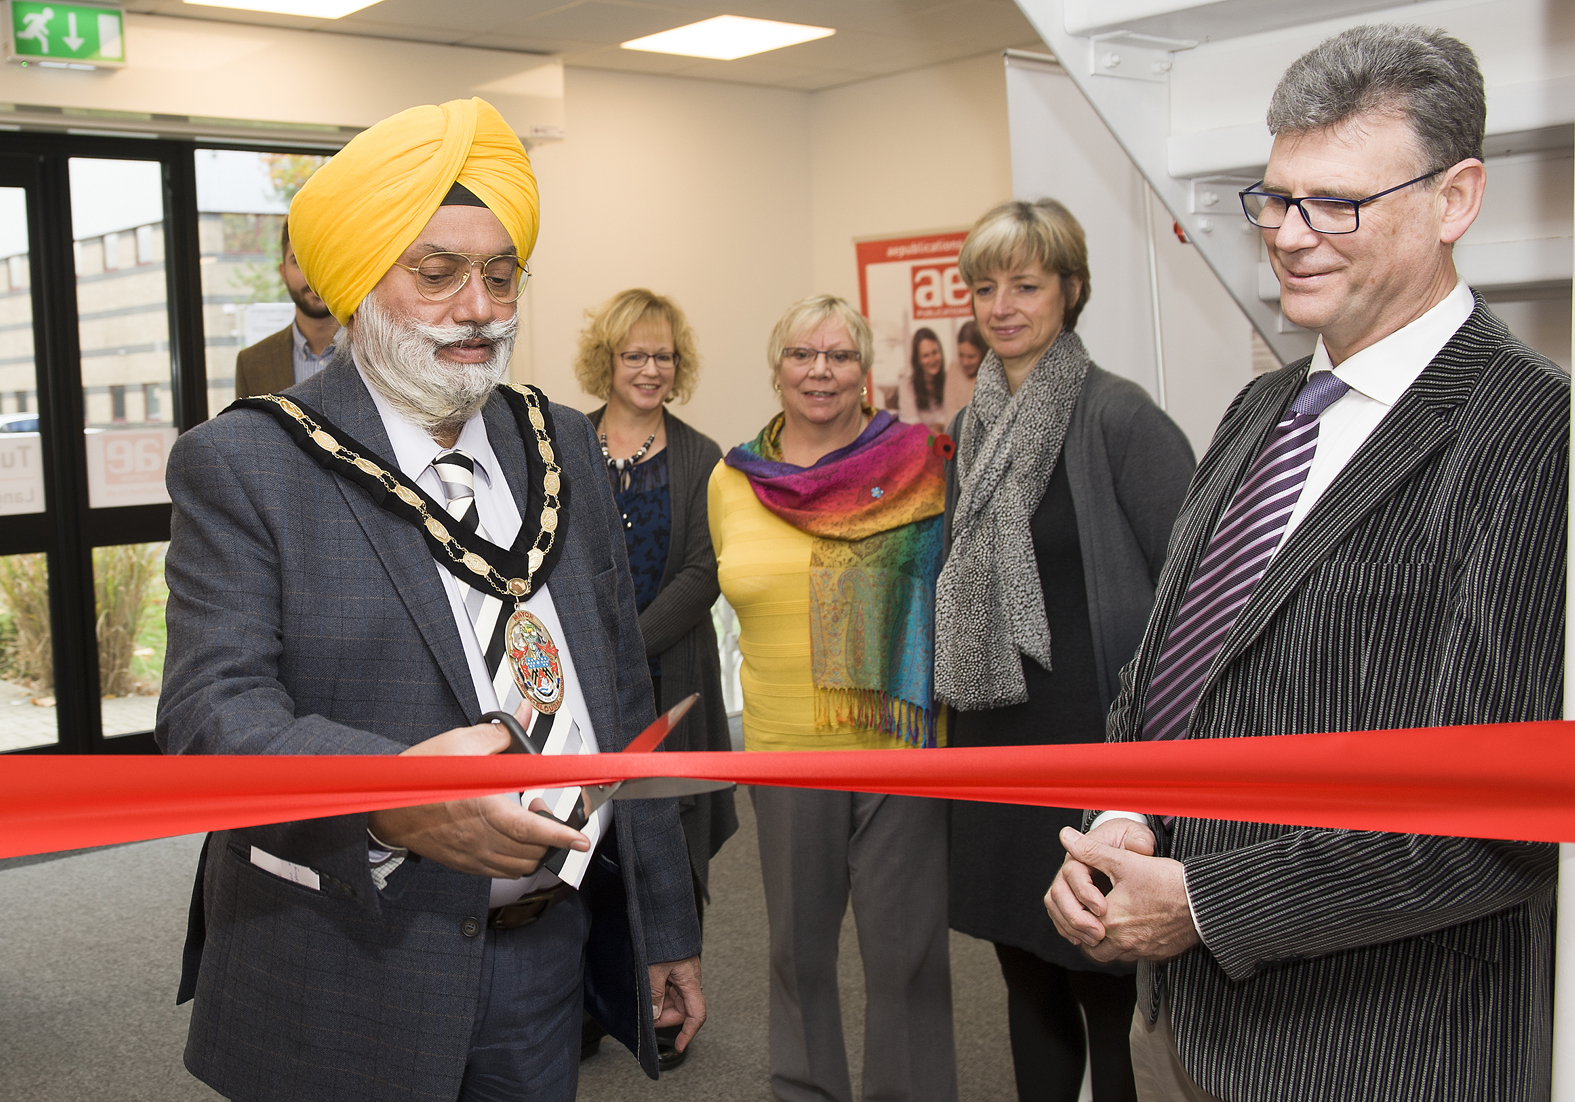 http://www.deepsouthmedia.co.uk/wp-content/uploads/2016/11/AE-Tuition-Centre-opening-01a.jpg